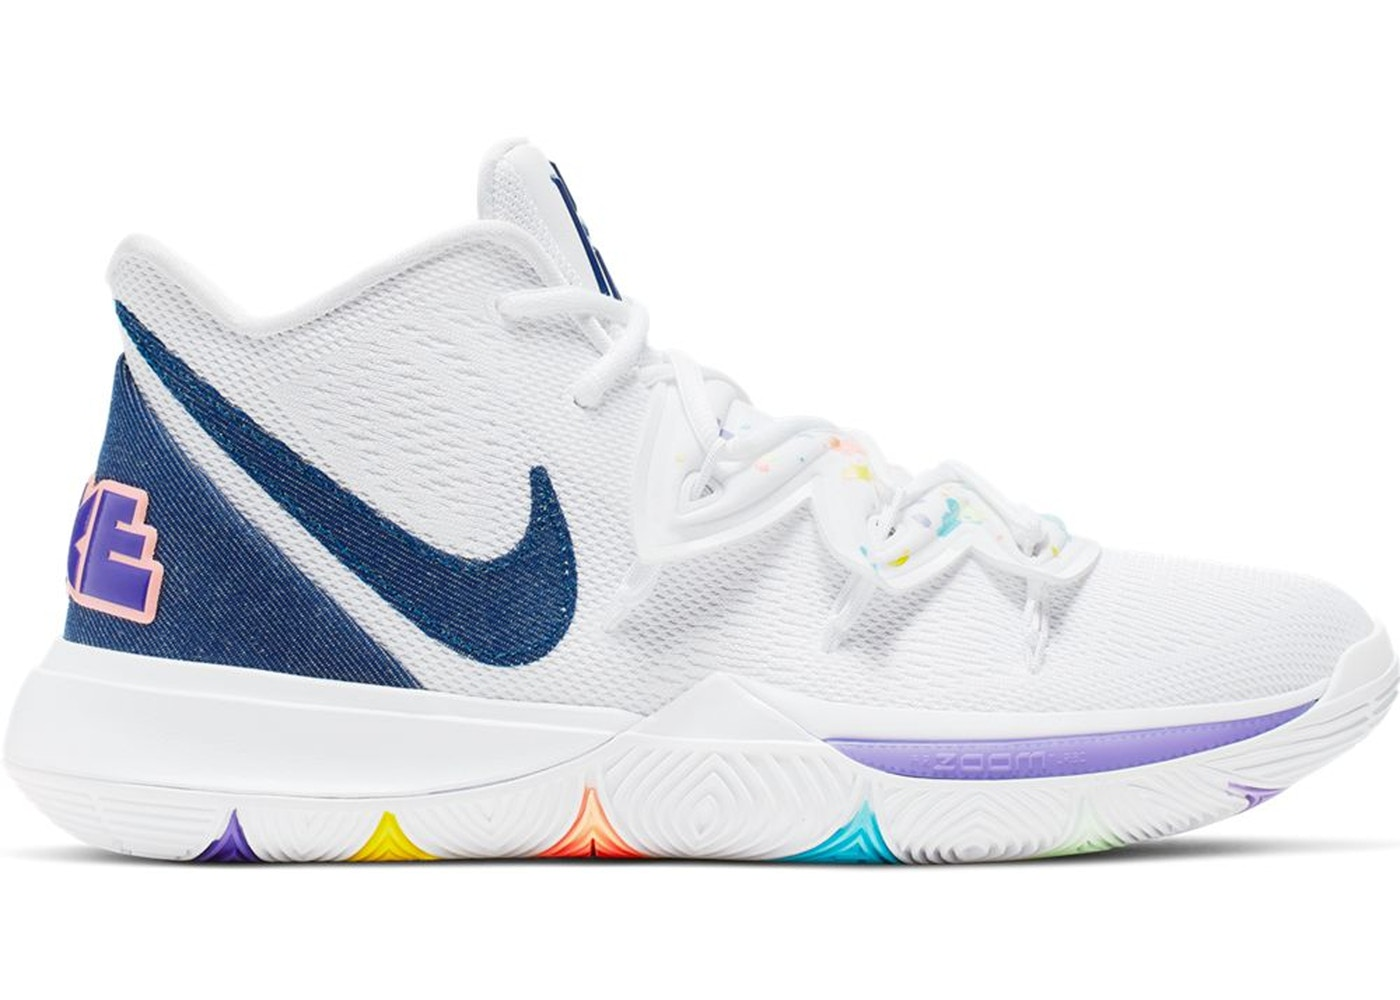 reputable site 867e0 01075 Buy Nike Basketball Kyrie Shoes & Deadstock Sneakers